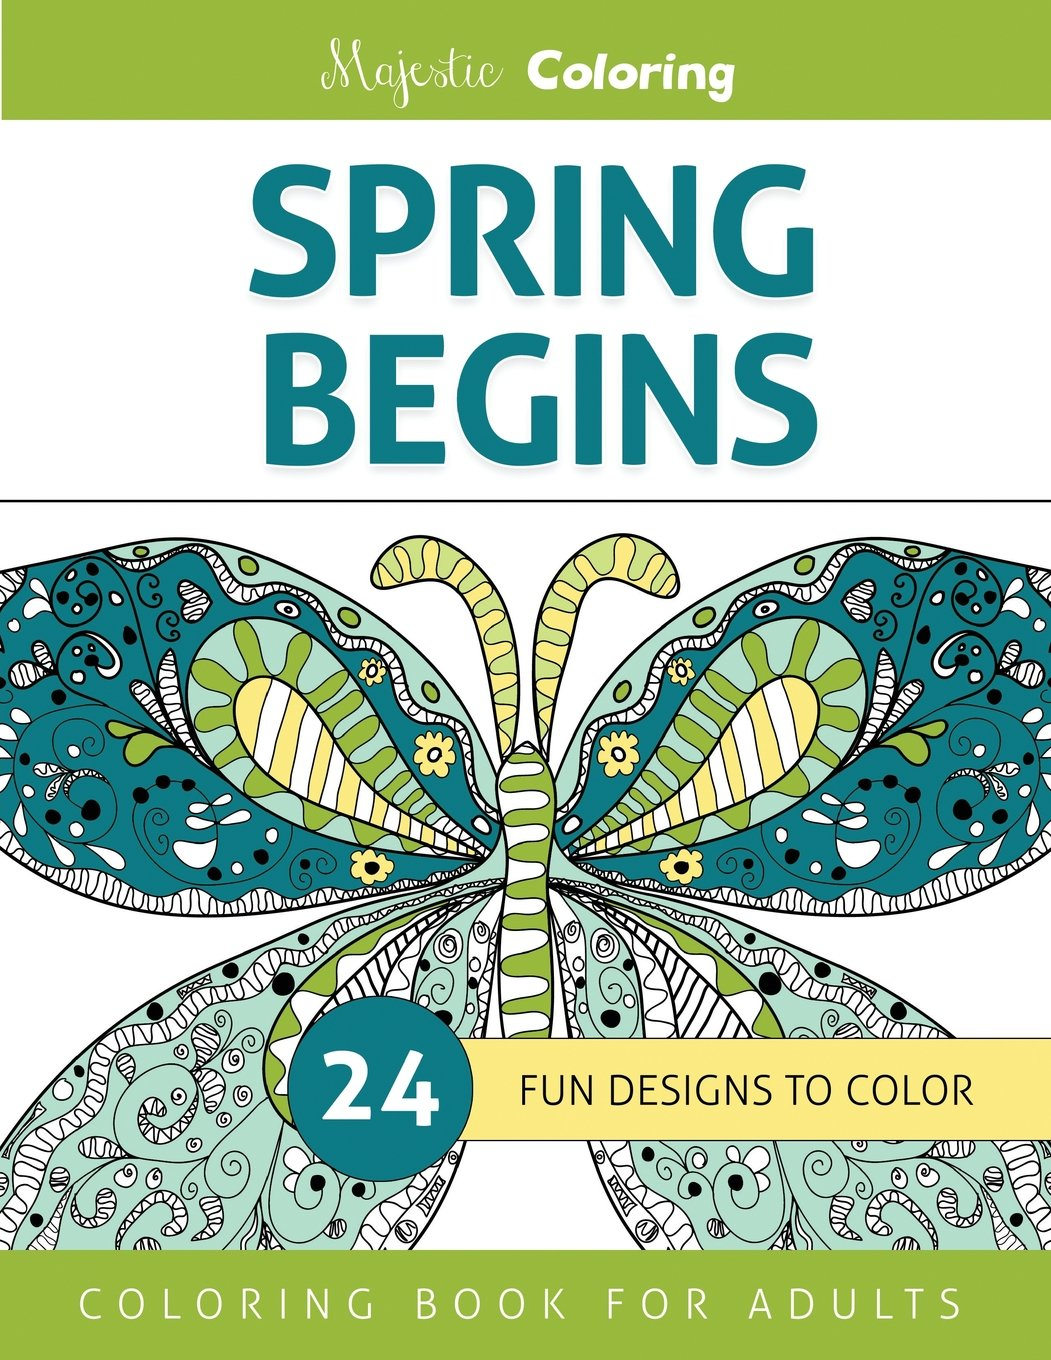 Spring Begins: Coloring Book for Adults